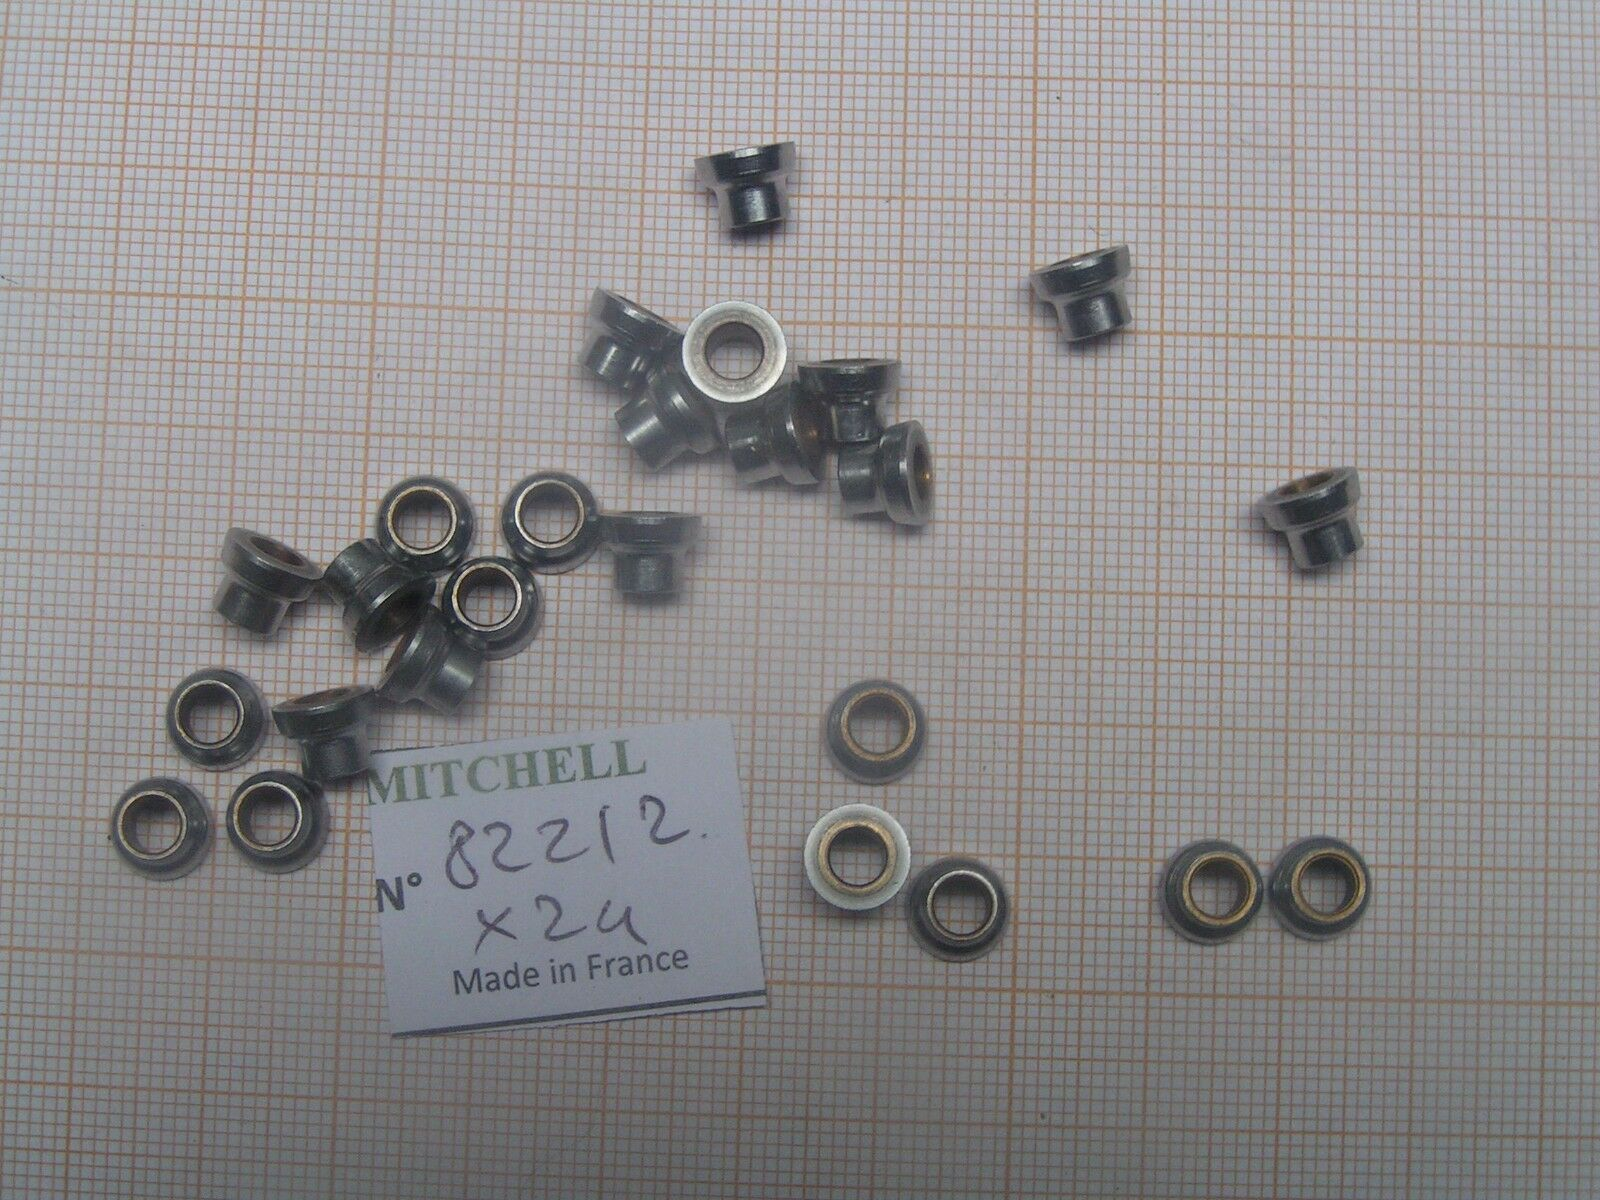 24 LINE GUIDE REEL PART 82212 GALET MOULINET MITCHELL 206 207 208 209 218 219